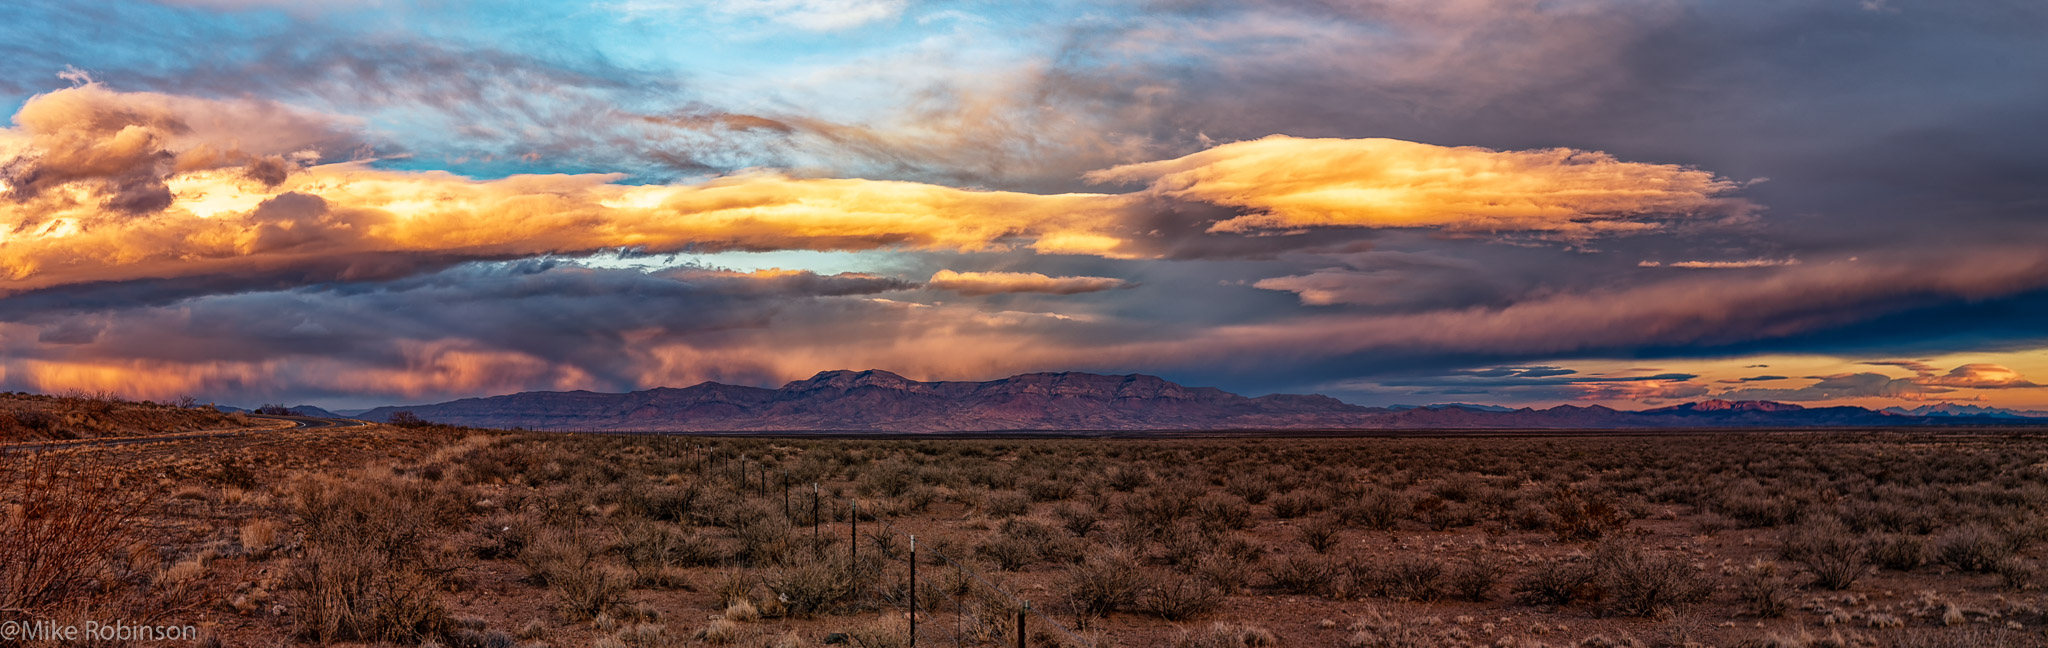 New Mexico Evening Scene.jpg